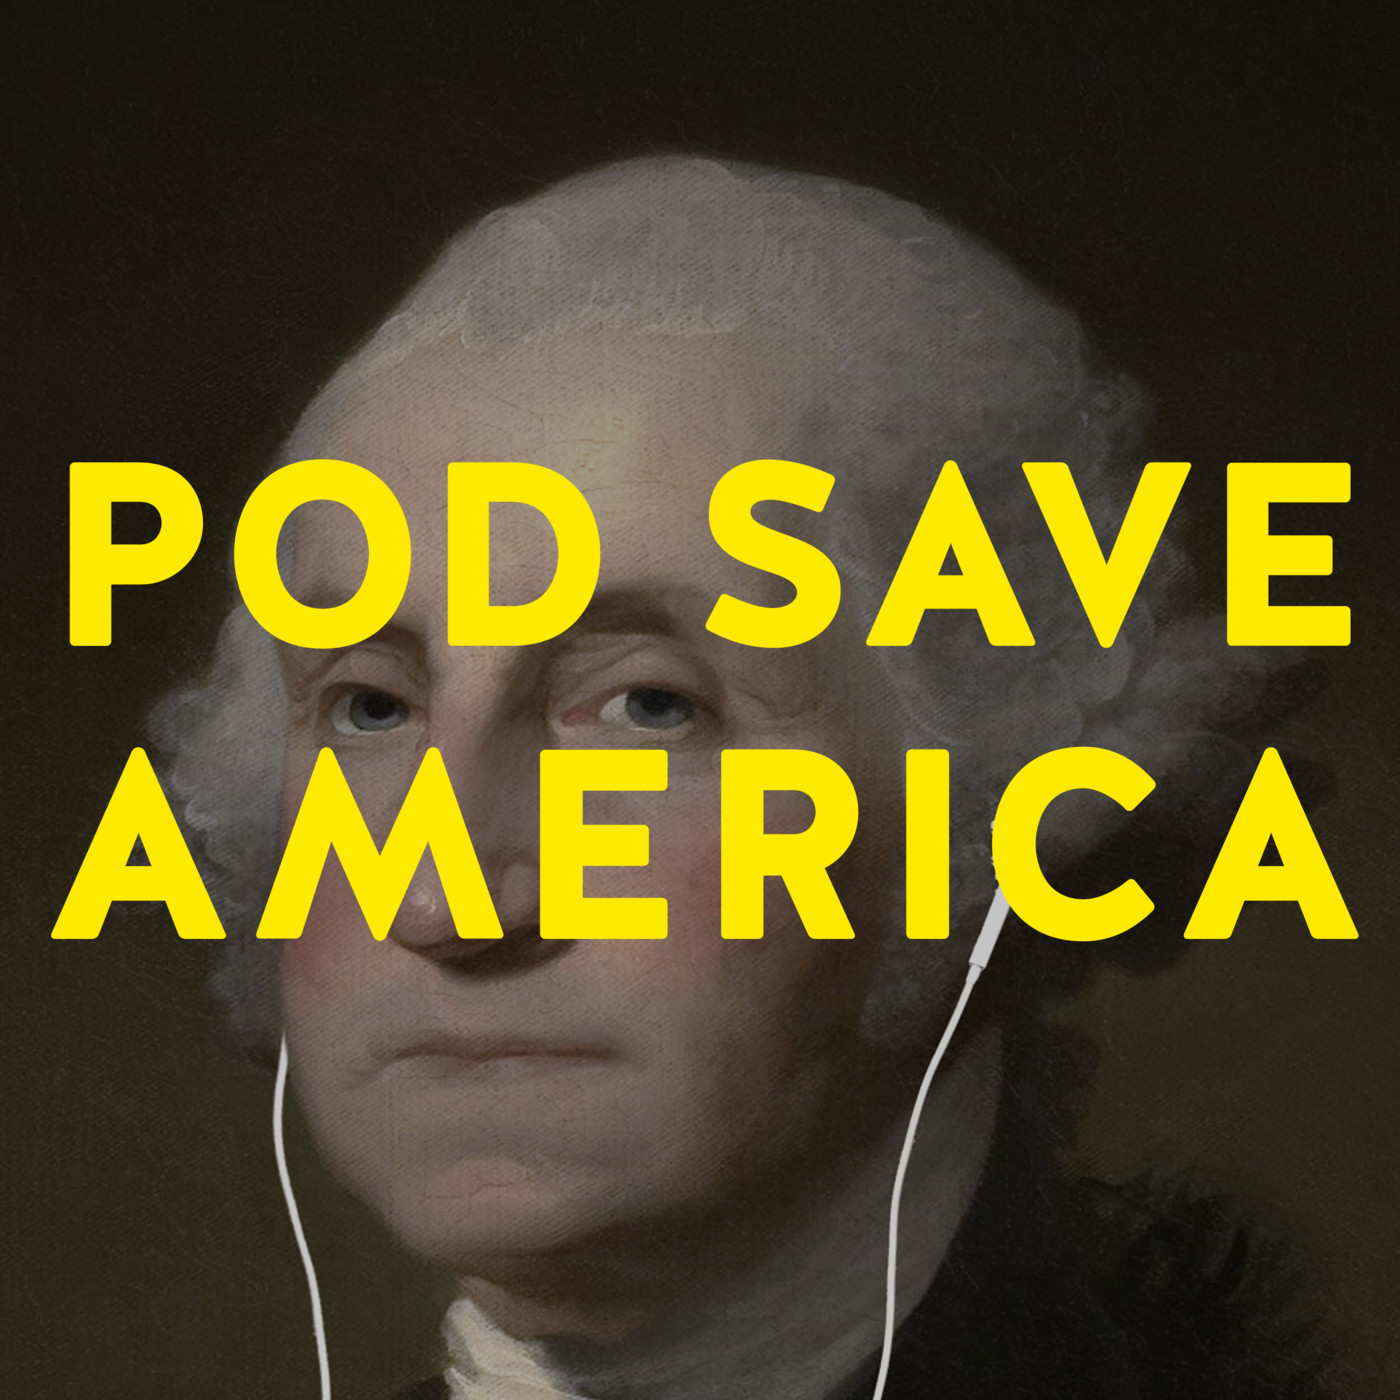 - Between the NPR Politics Podcast and Pod Save America, I'm basically always up to date with American political news. (Well, those podcasts and Stephen Colbert.) I won't go into my usual why-you-should-listen-to-Pod-Save-America pitch, but I do want to highlight their 2020 coverage. With basically half the country declaring a run for president, it's really hard to keep track of who's who and where all these candidates fall on the policy spectrum. Even though we're still 18 months away from the election, Pod Save America is putting in work and releasing long interviews (a standalone 60-minute episode, compared to a 15-30 minute interview inside of an episode) with all the candidates. They're putting them out quickly and the most recent few are piling up in my feed, but thankfully I have plenty of time to catch up before the primaries. They've already interviewed Pete Buttigieg, Cory Booker, Julian Castro, Elizabeth Warren, Jay Inslee, Kamala Harris, Kirsten Gillibrand, Seth Moulton, and Tim Ryan. I really encourage you to check out them all, not just your current favourite candidate. See what everyone has to offer!